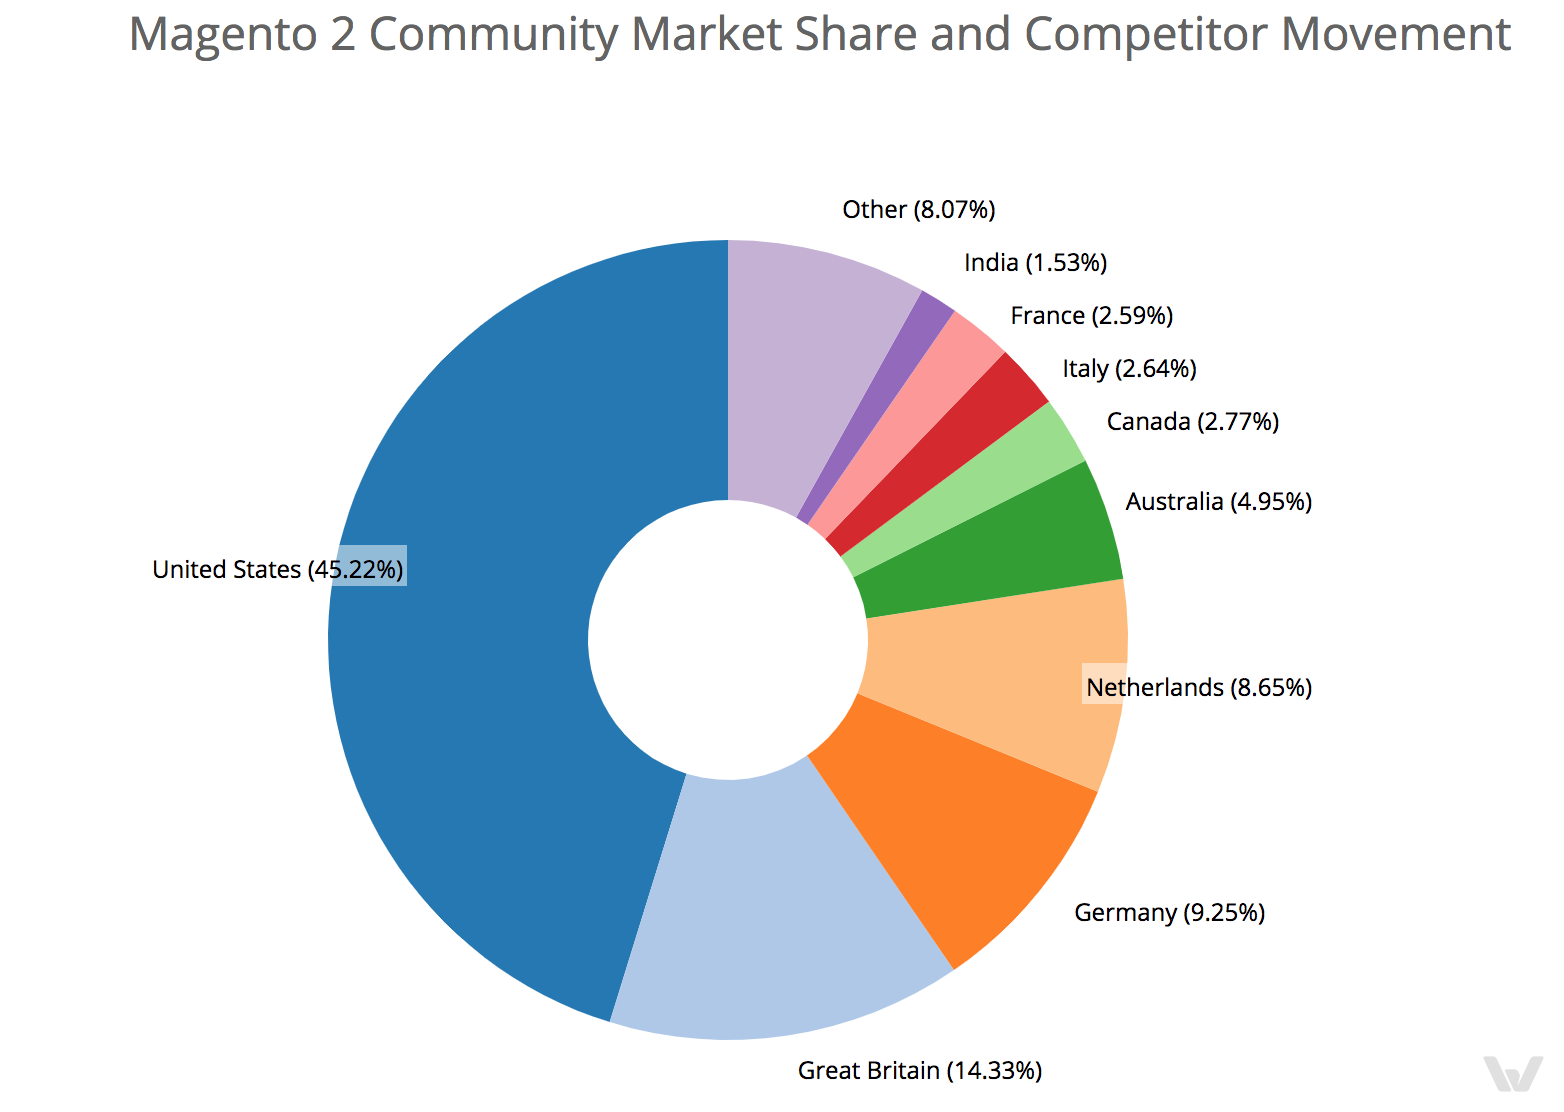 Magento 2 Community market share